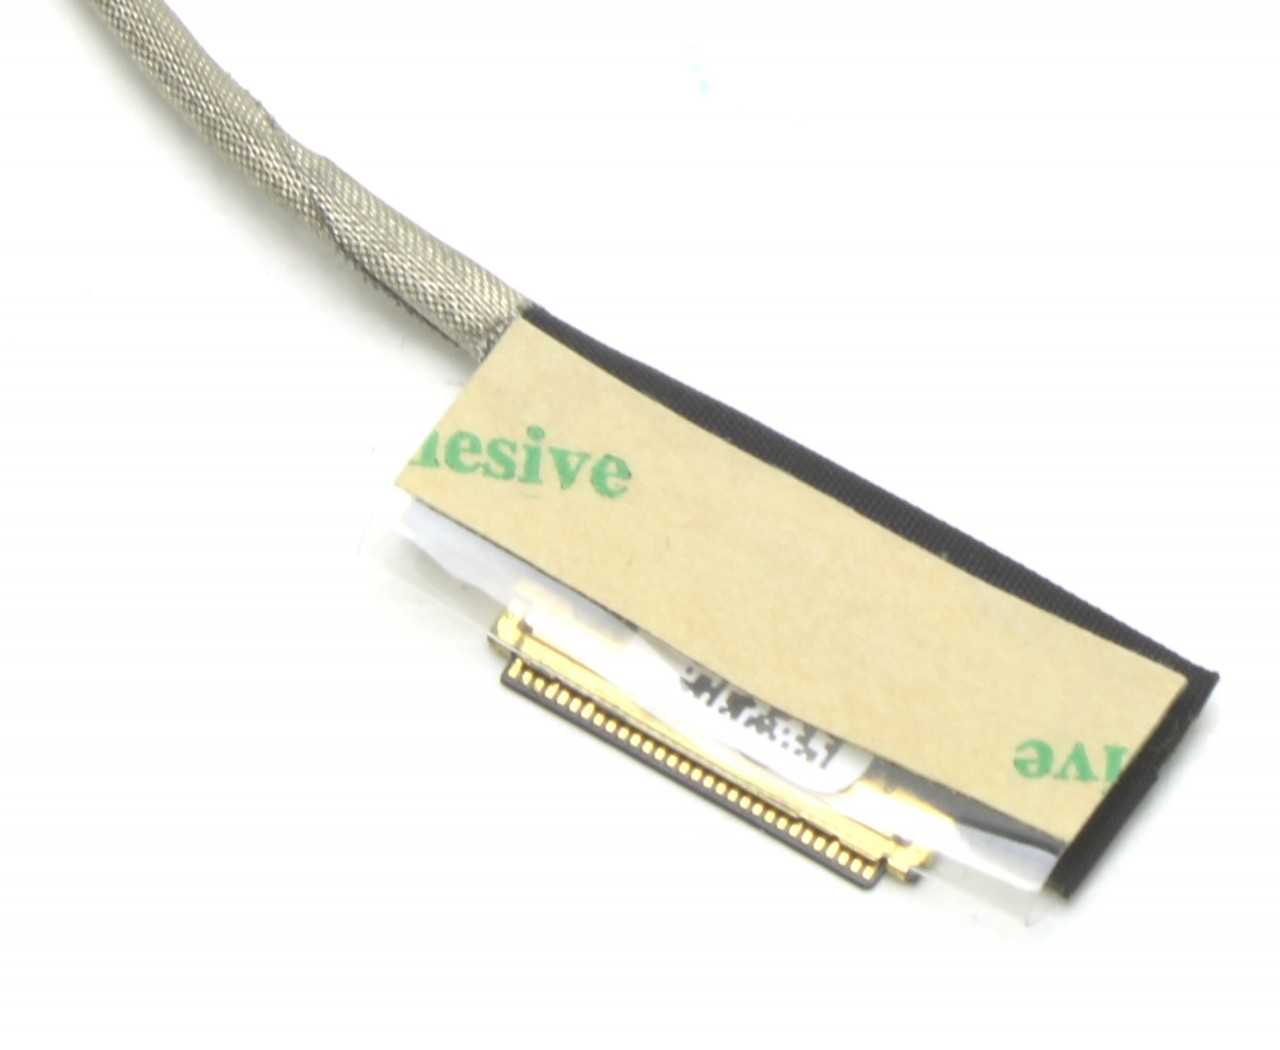 Cablu video LVDS Acer Aspire E5 572G cu touchscreen imagine powerlaptop.ro 2021